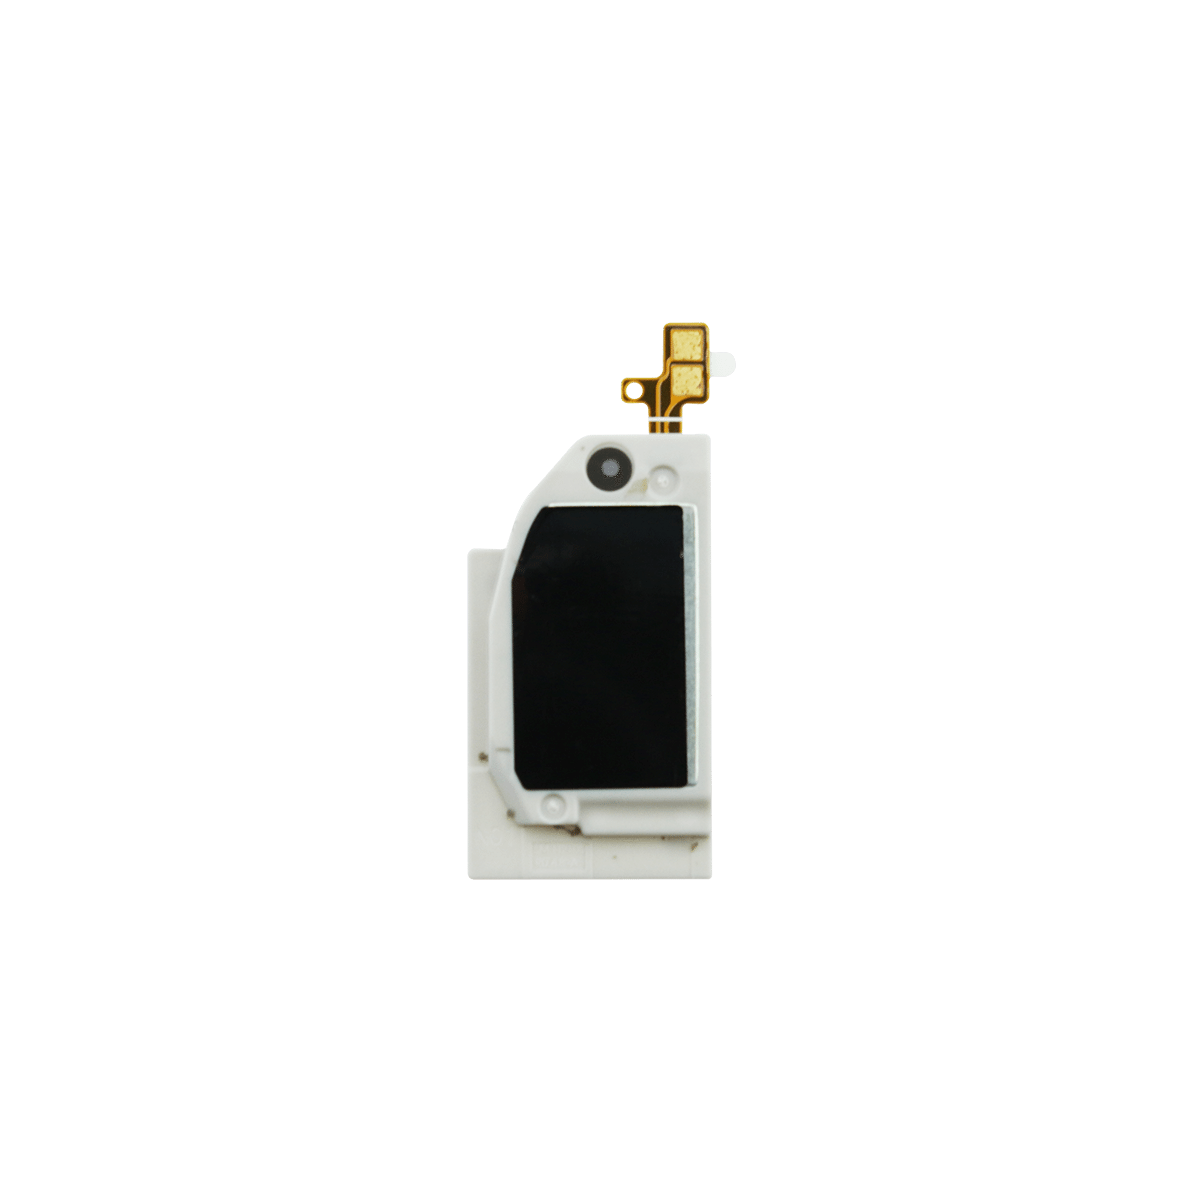 Samsung Galaxy Note 4 Loudspeaker Replacement